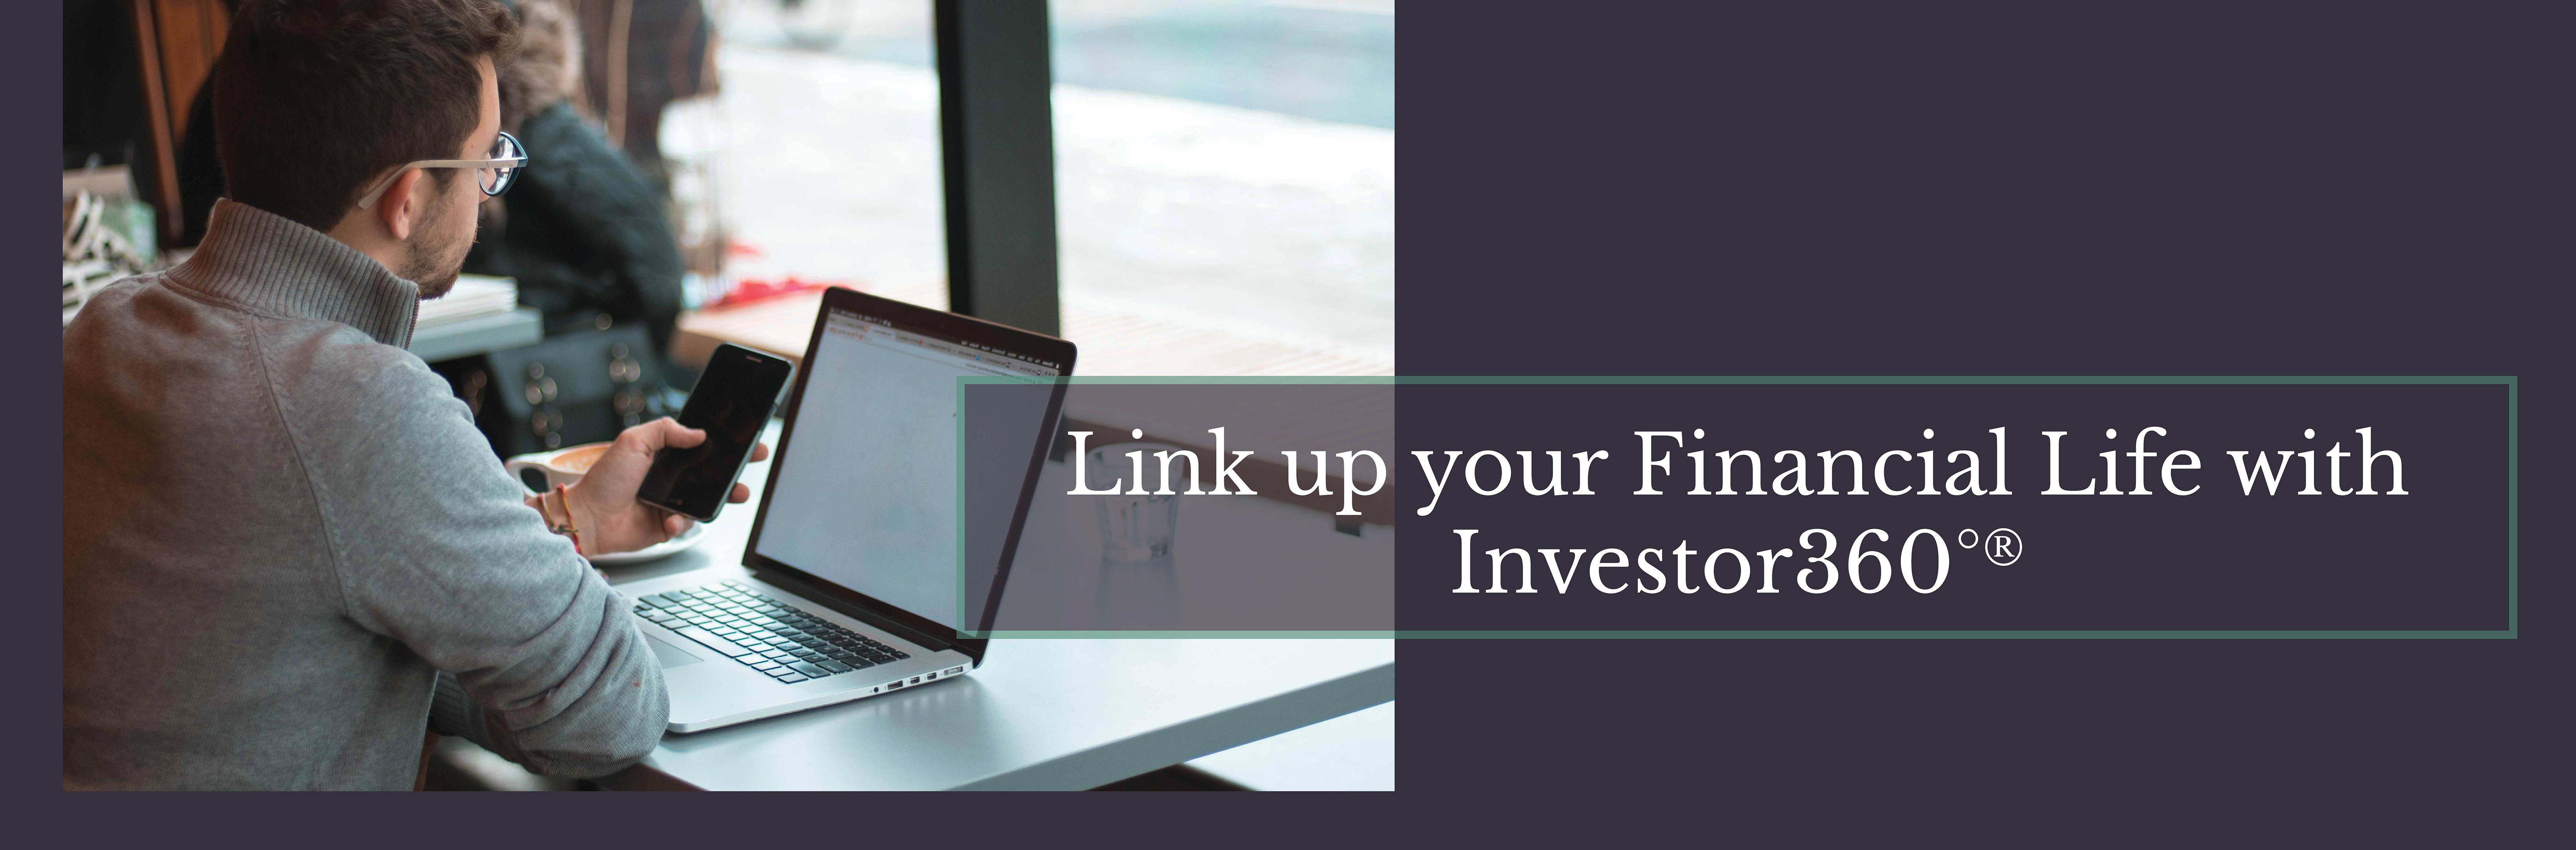 Link up your Financial Life Image